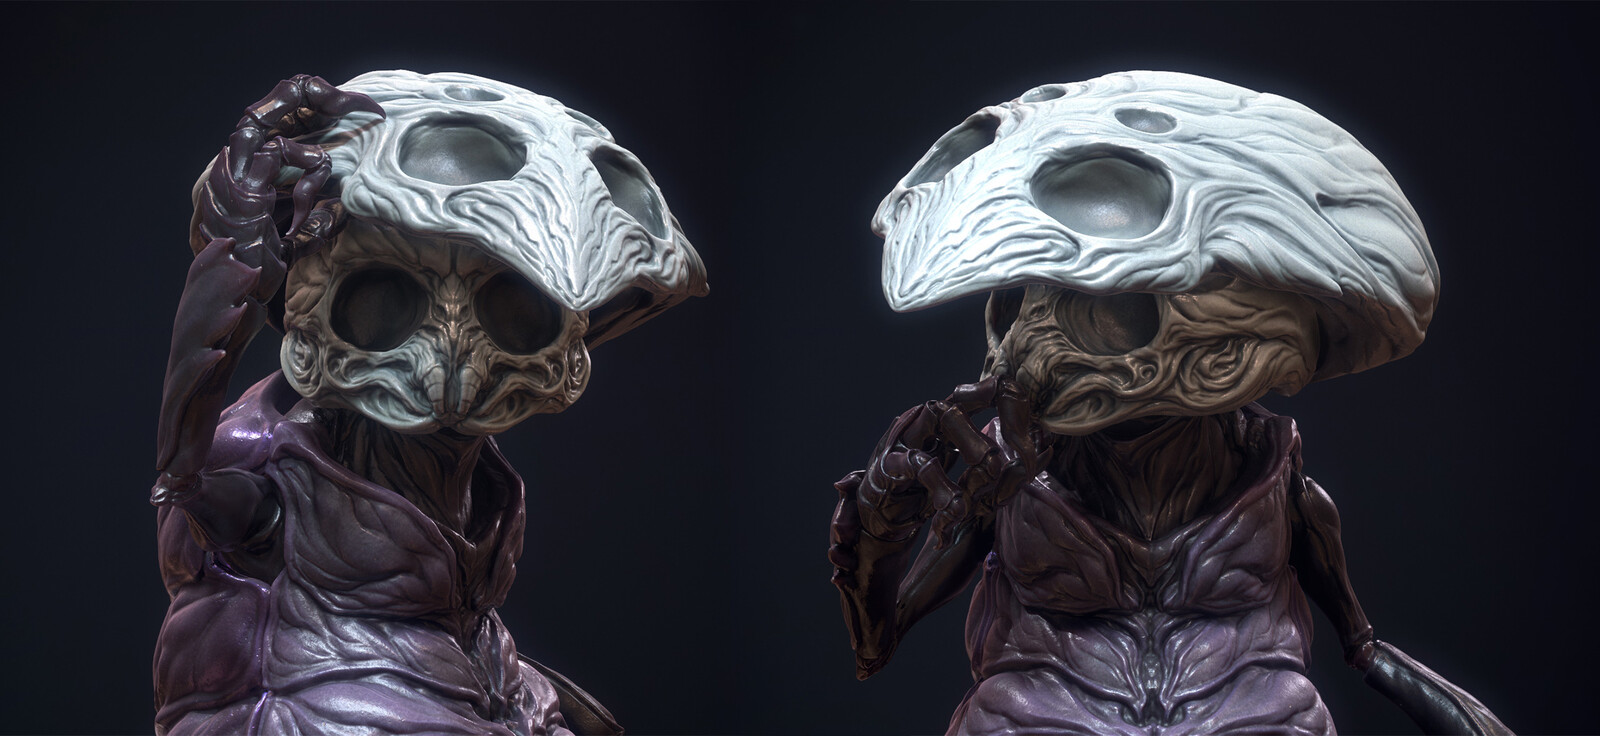 detail shots of the face with Monomon's Mask